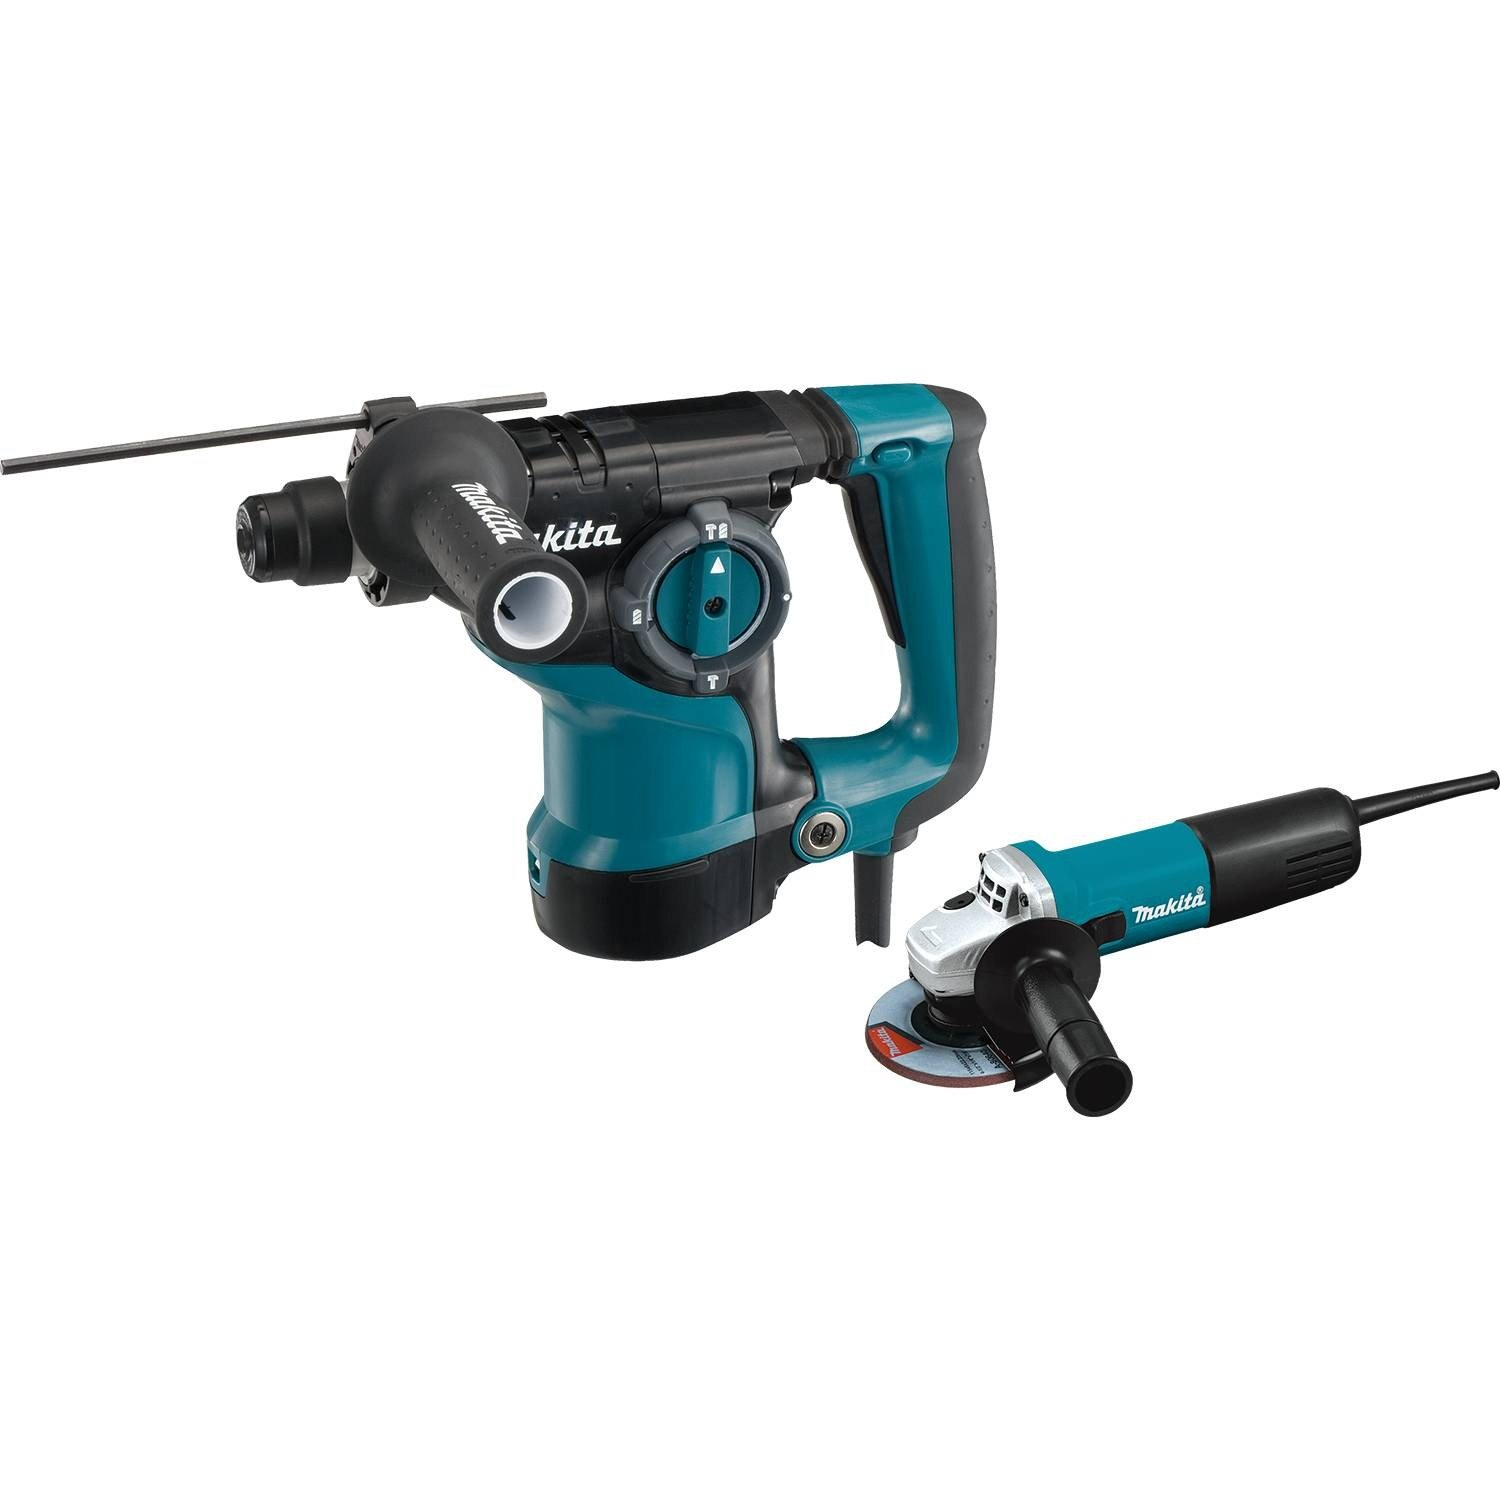 Makita HR2811FX 1-1/8'' Rotary Hammer, accepts SDS-PLUS bits and 4-1/2'' Angle Grinder by Makita (Image #1)